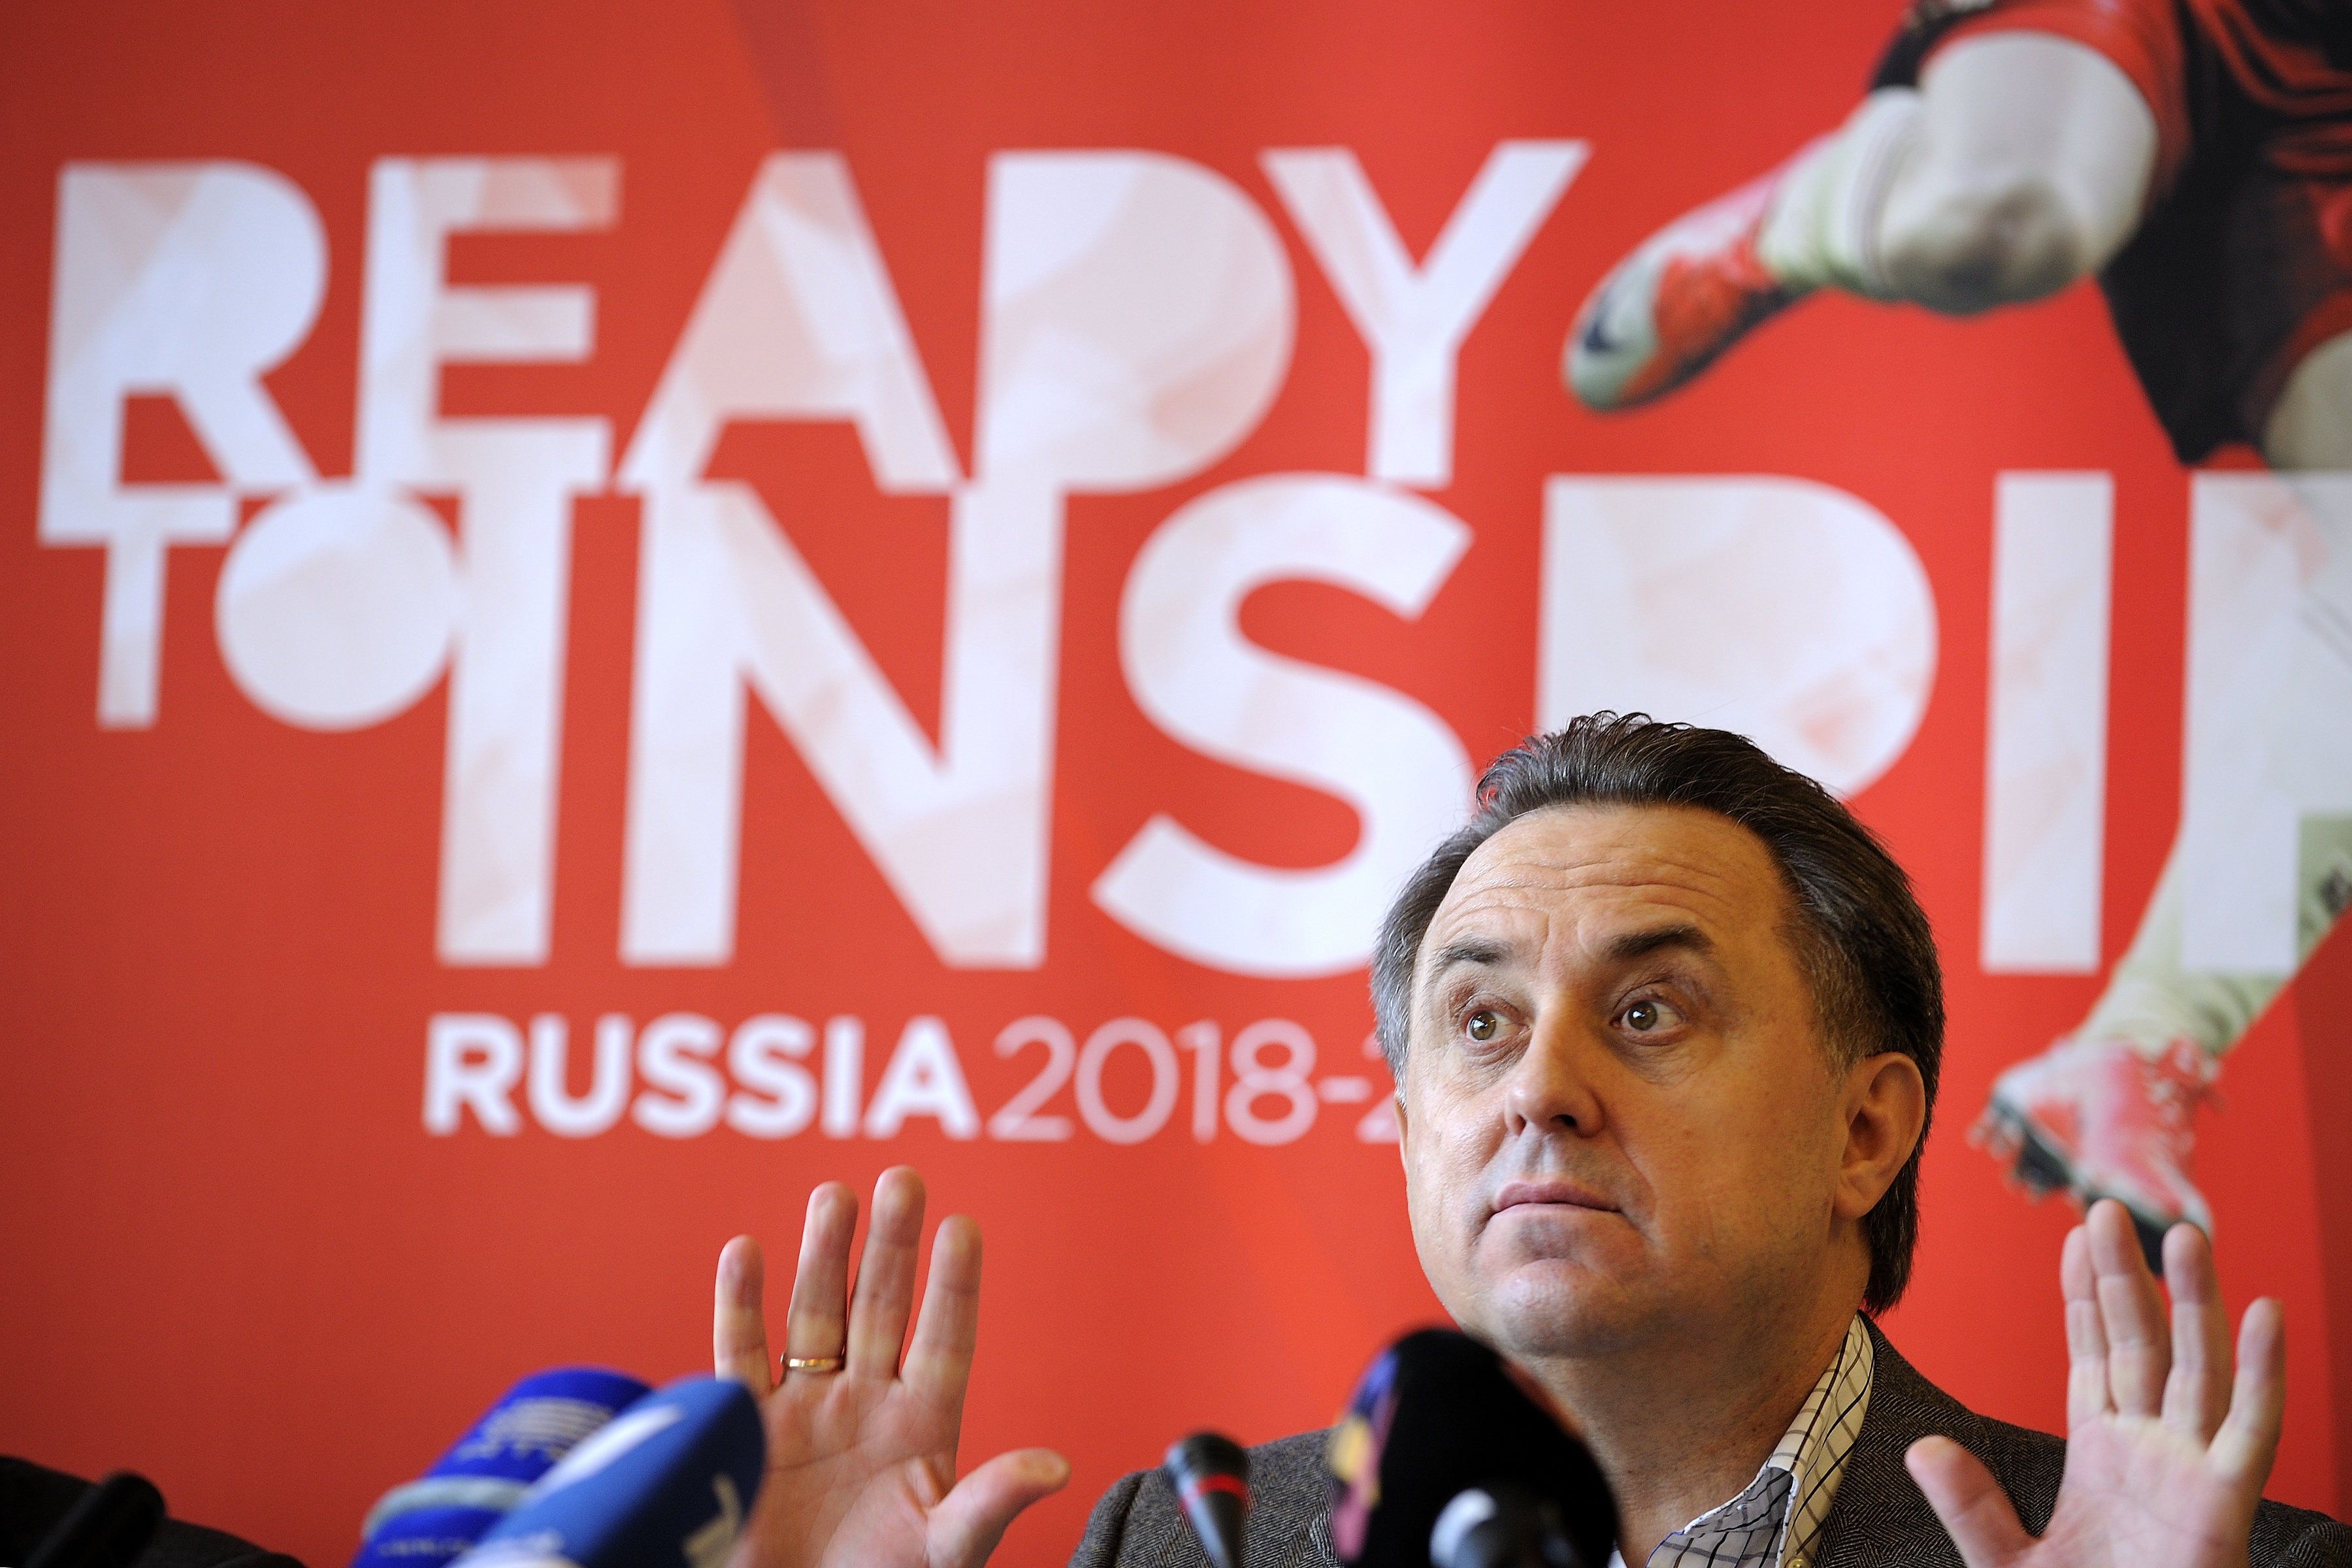 Russian Sports Minister Vitaly Mutko gives a press conference on Nov. 30, 2010 in Zurich before his country's 2018 World Cup bid to world football's ruling body FIFA. FABRICE COFFRINI—AFP/Getty Images